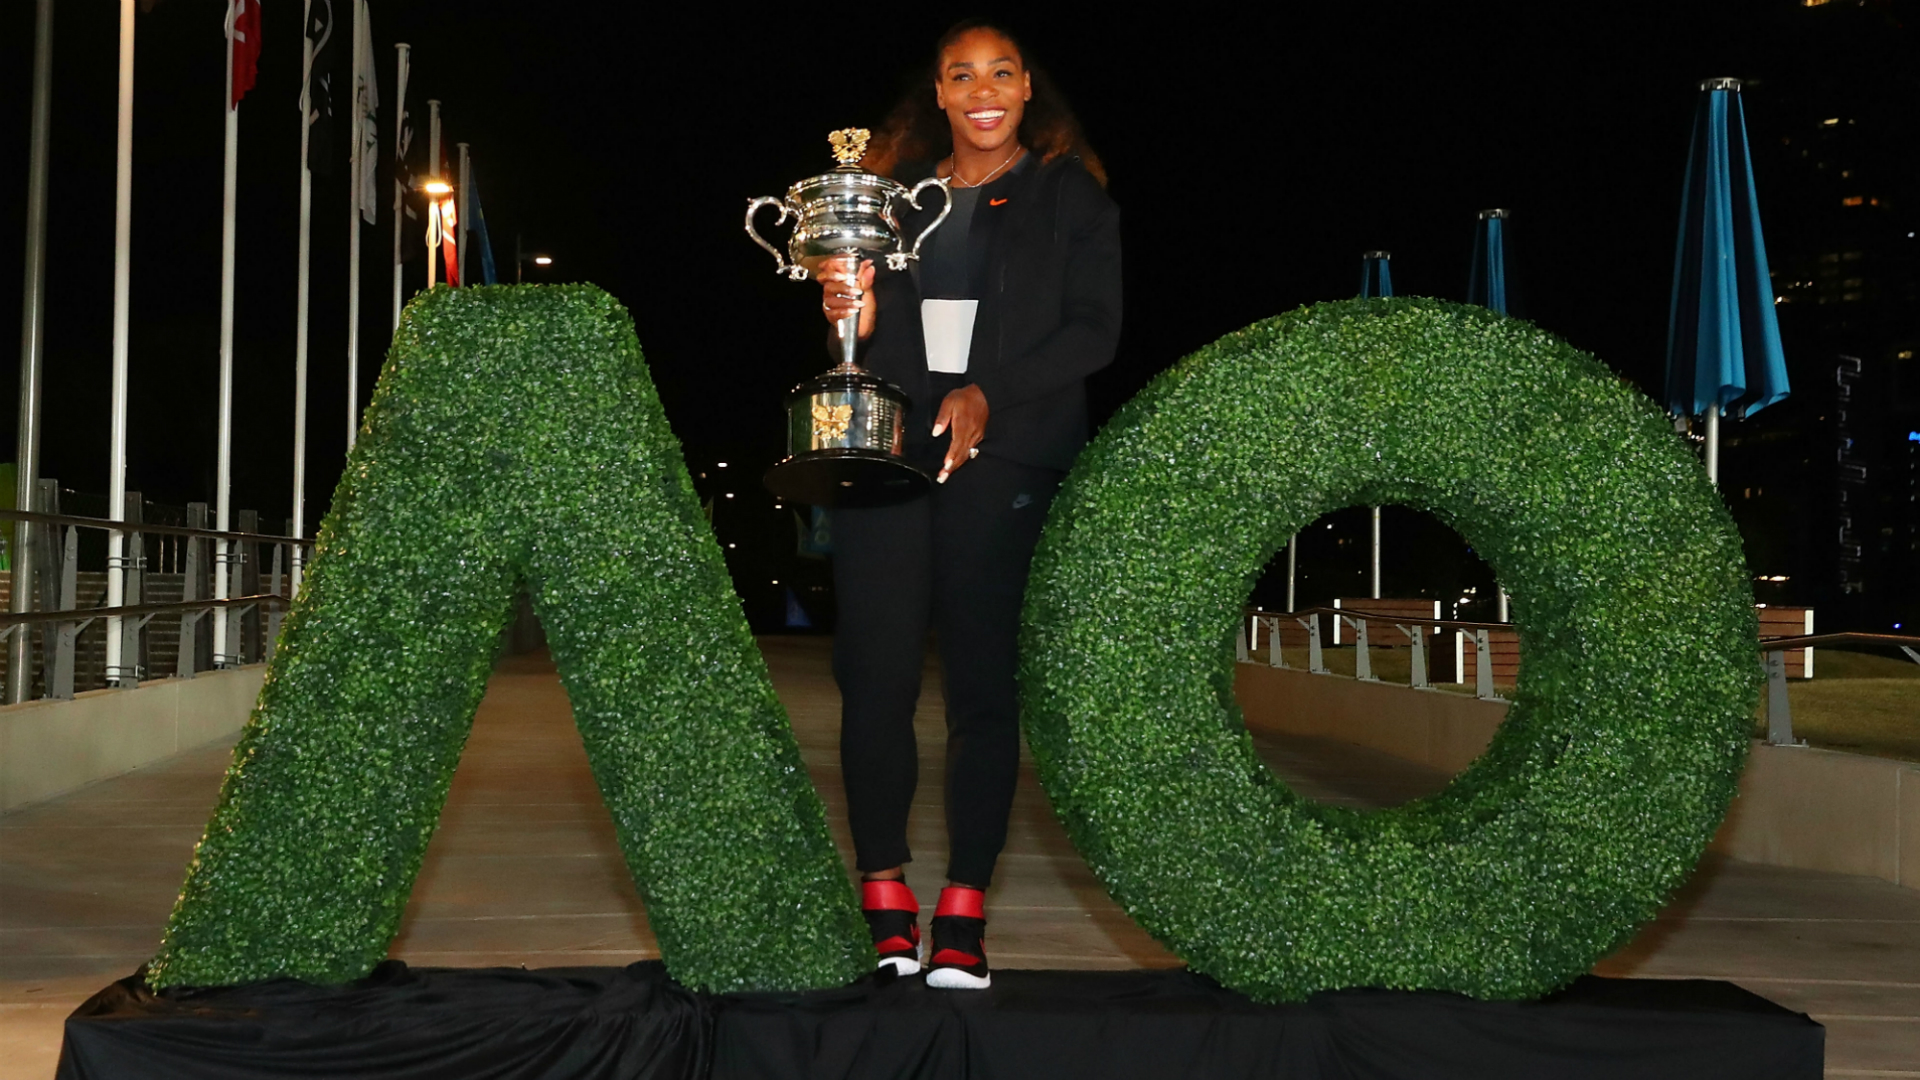 Andy Murray & Serena Williams 'Will Be Back' At Australian Open - Tournament Boss